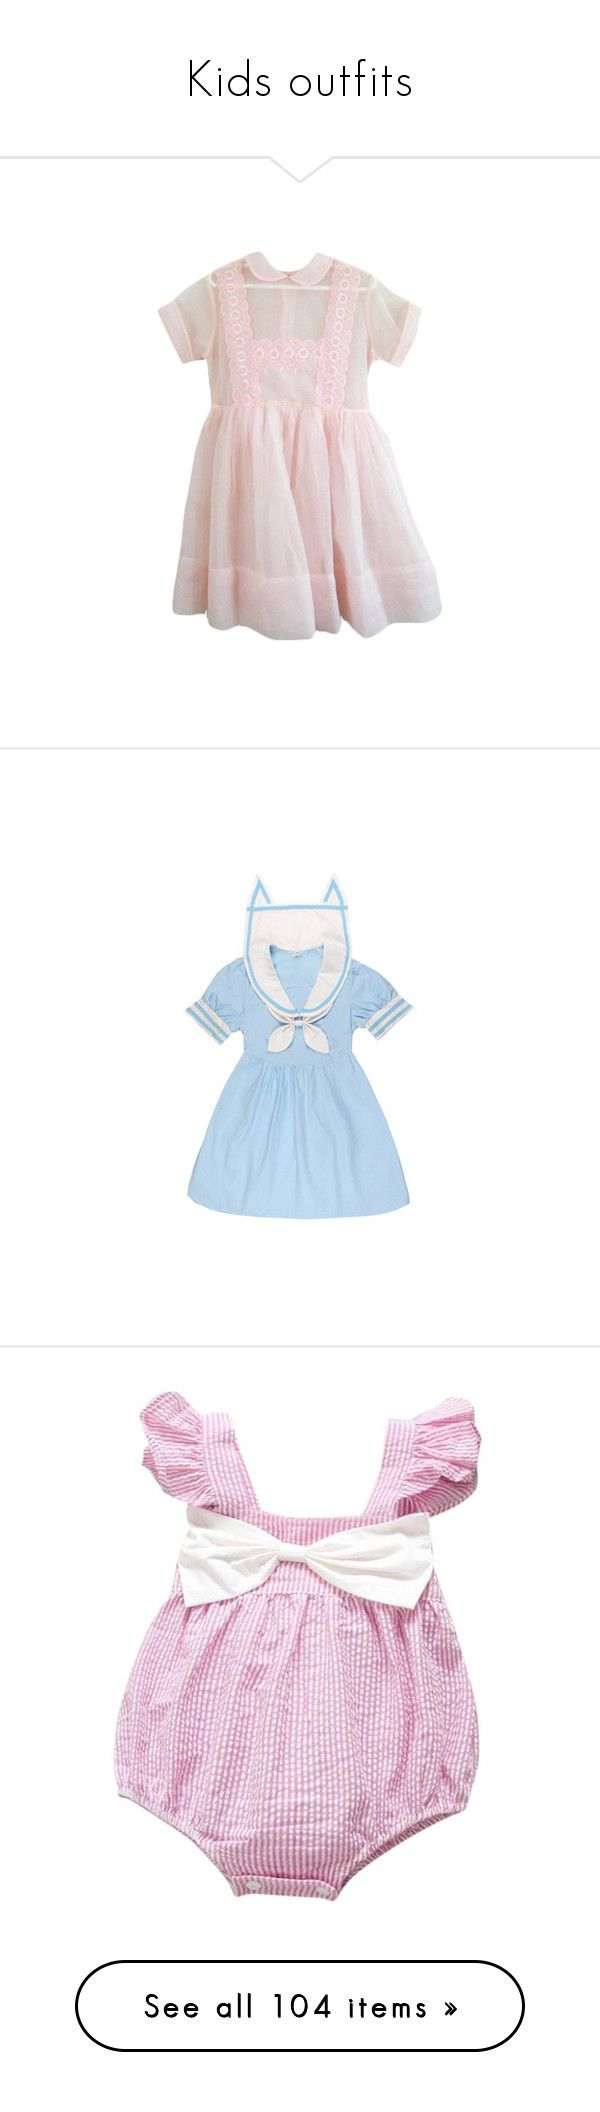 """""""Kids outfits"""" by unicornchaby ❤ liked on Polyvore featuring dresses, clothing - ss dresses, pastel, pastel pink dresses, pink dress, pastel dress, blue, blue color dress, blue dress and shorts"""